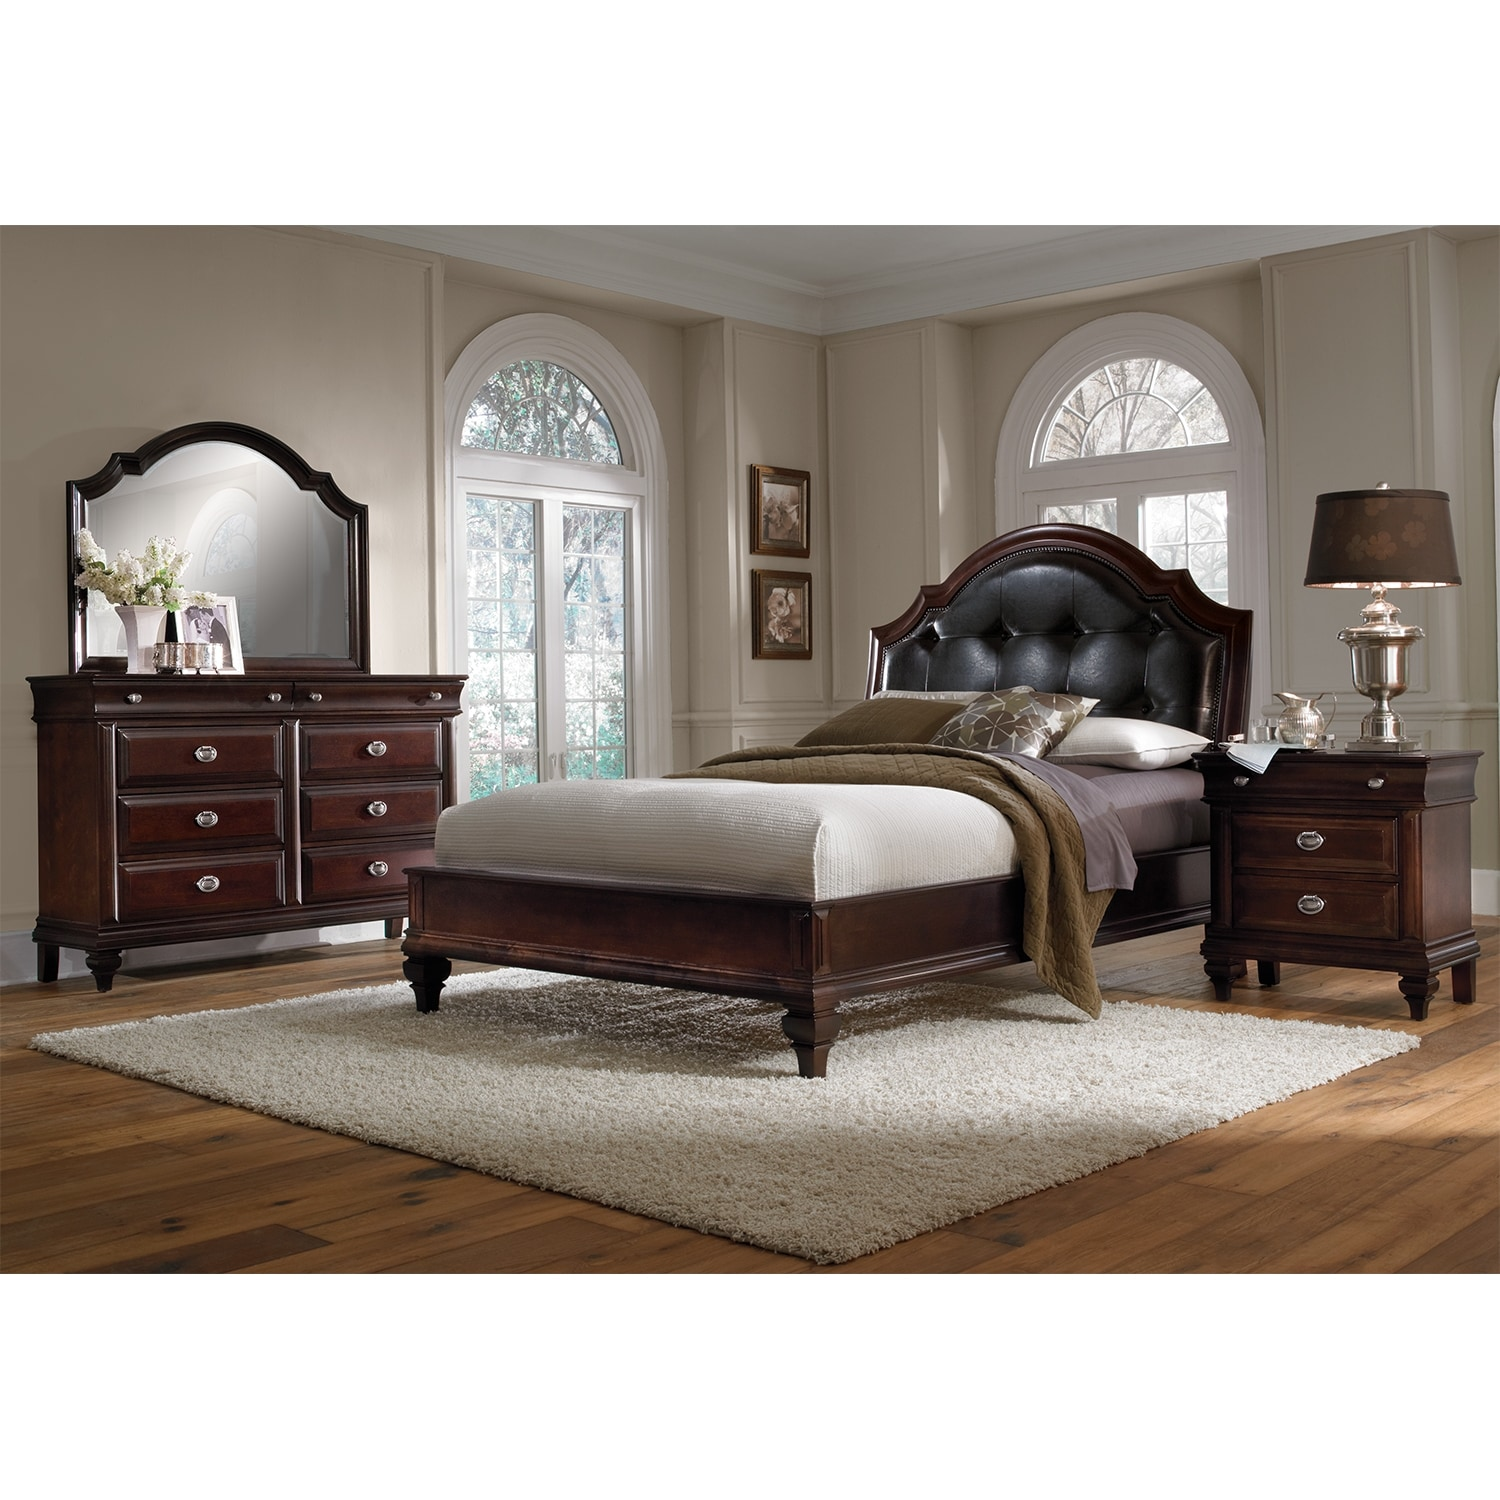 manhattan 6 piece queen bedroom set cherry value city furniture. Black Bedroom Furniture Sets. Home Design Ideas